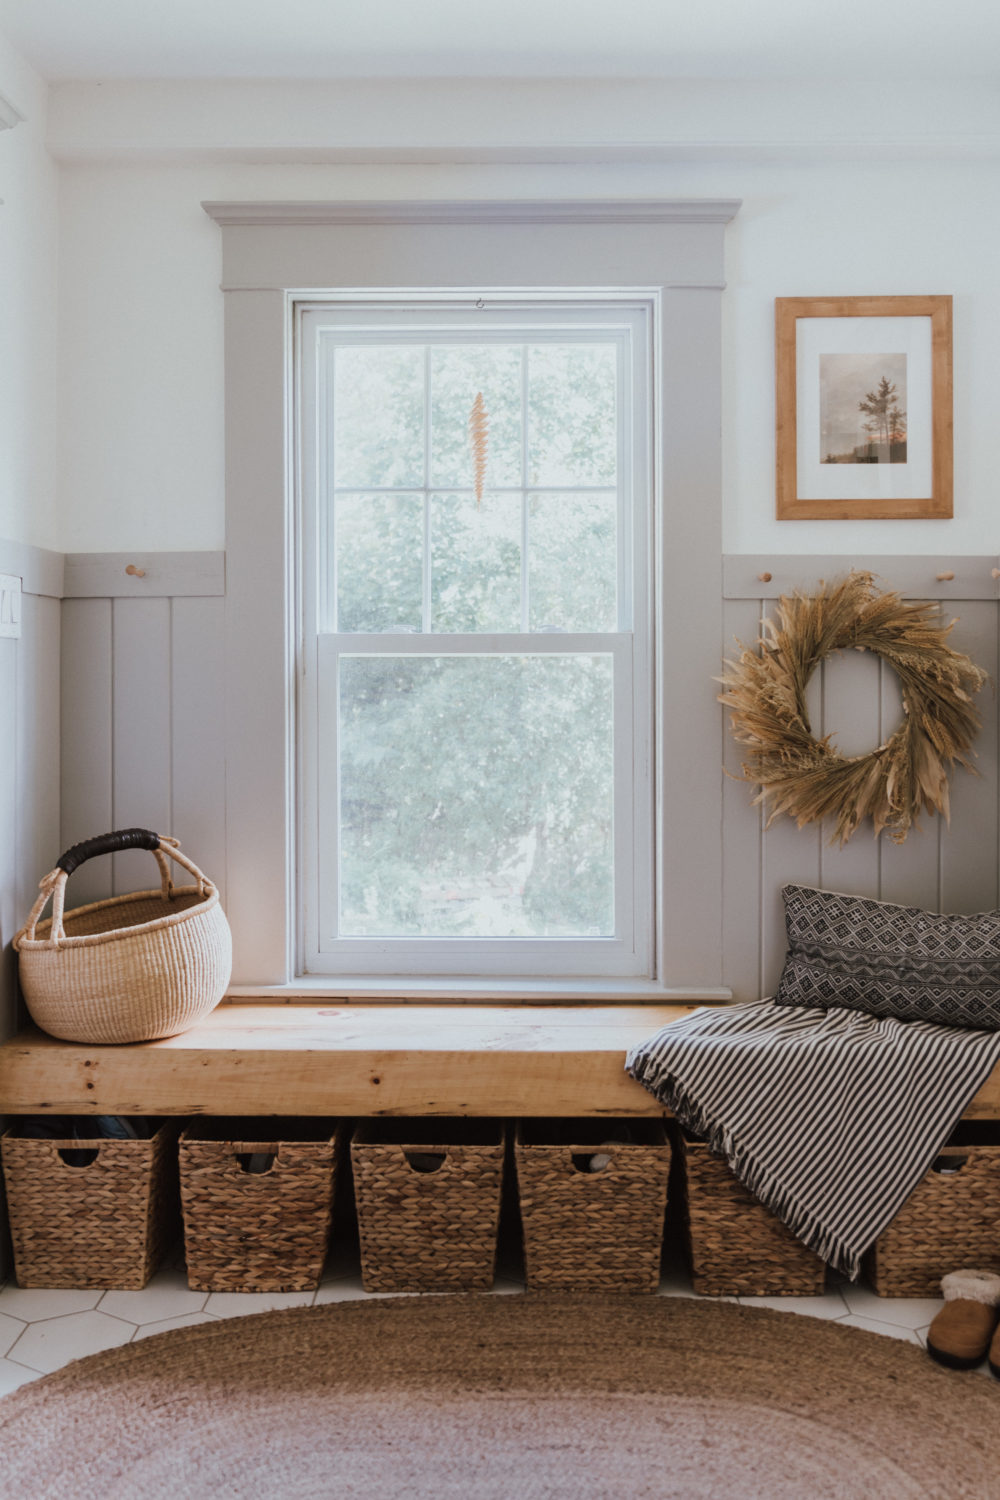 The Wild Decoelis | Fall Home Tour | gray wainscotting mudroom with built in floating bench, baskets for shoes, a throw pillow and a fall wreath on shaker peg rail